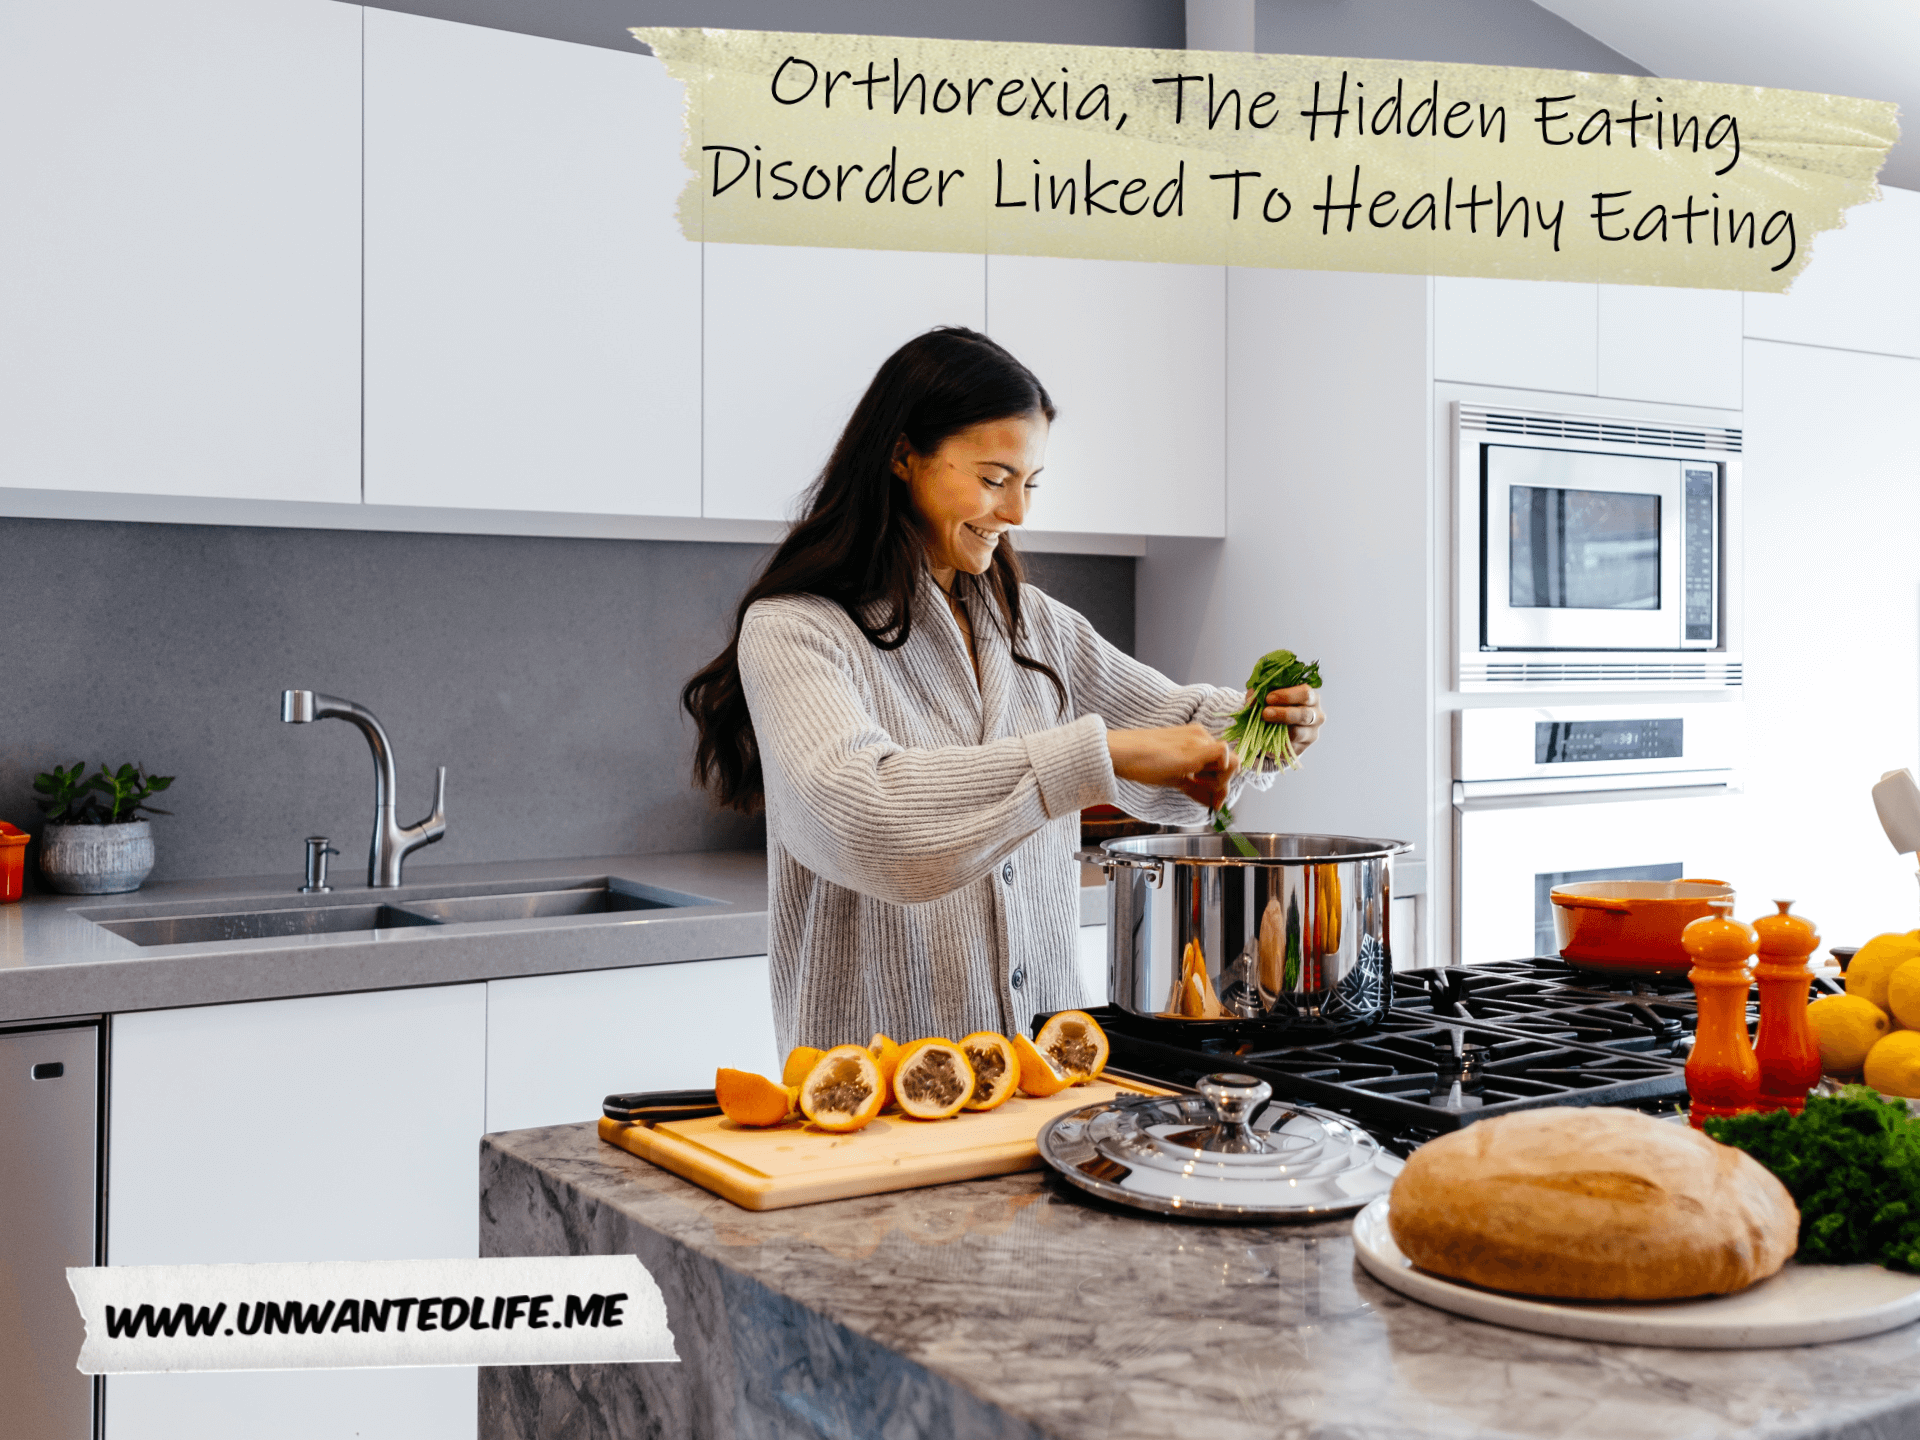 A woman in a large kitchen making dinner with fresh and healthy ingredients to represent the topic of the article - Orthorexia, The Hidden Eating Disorder Linked To Healthy Eating